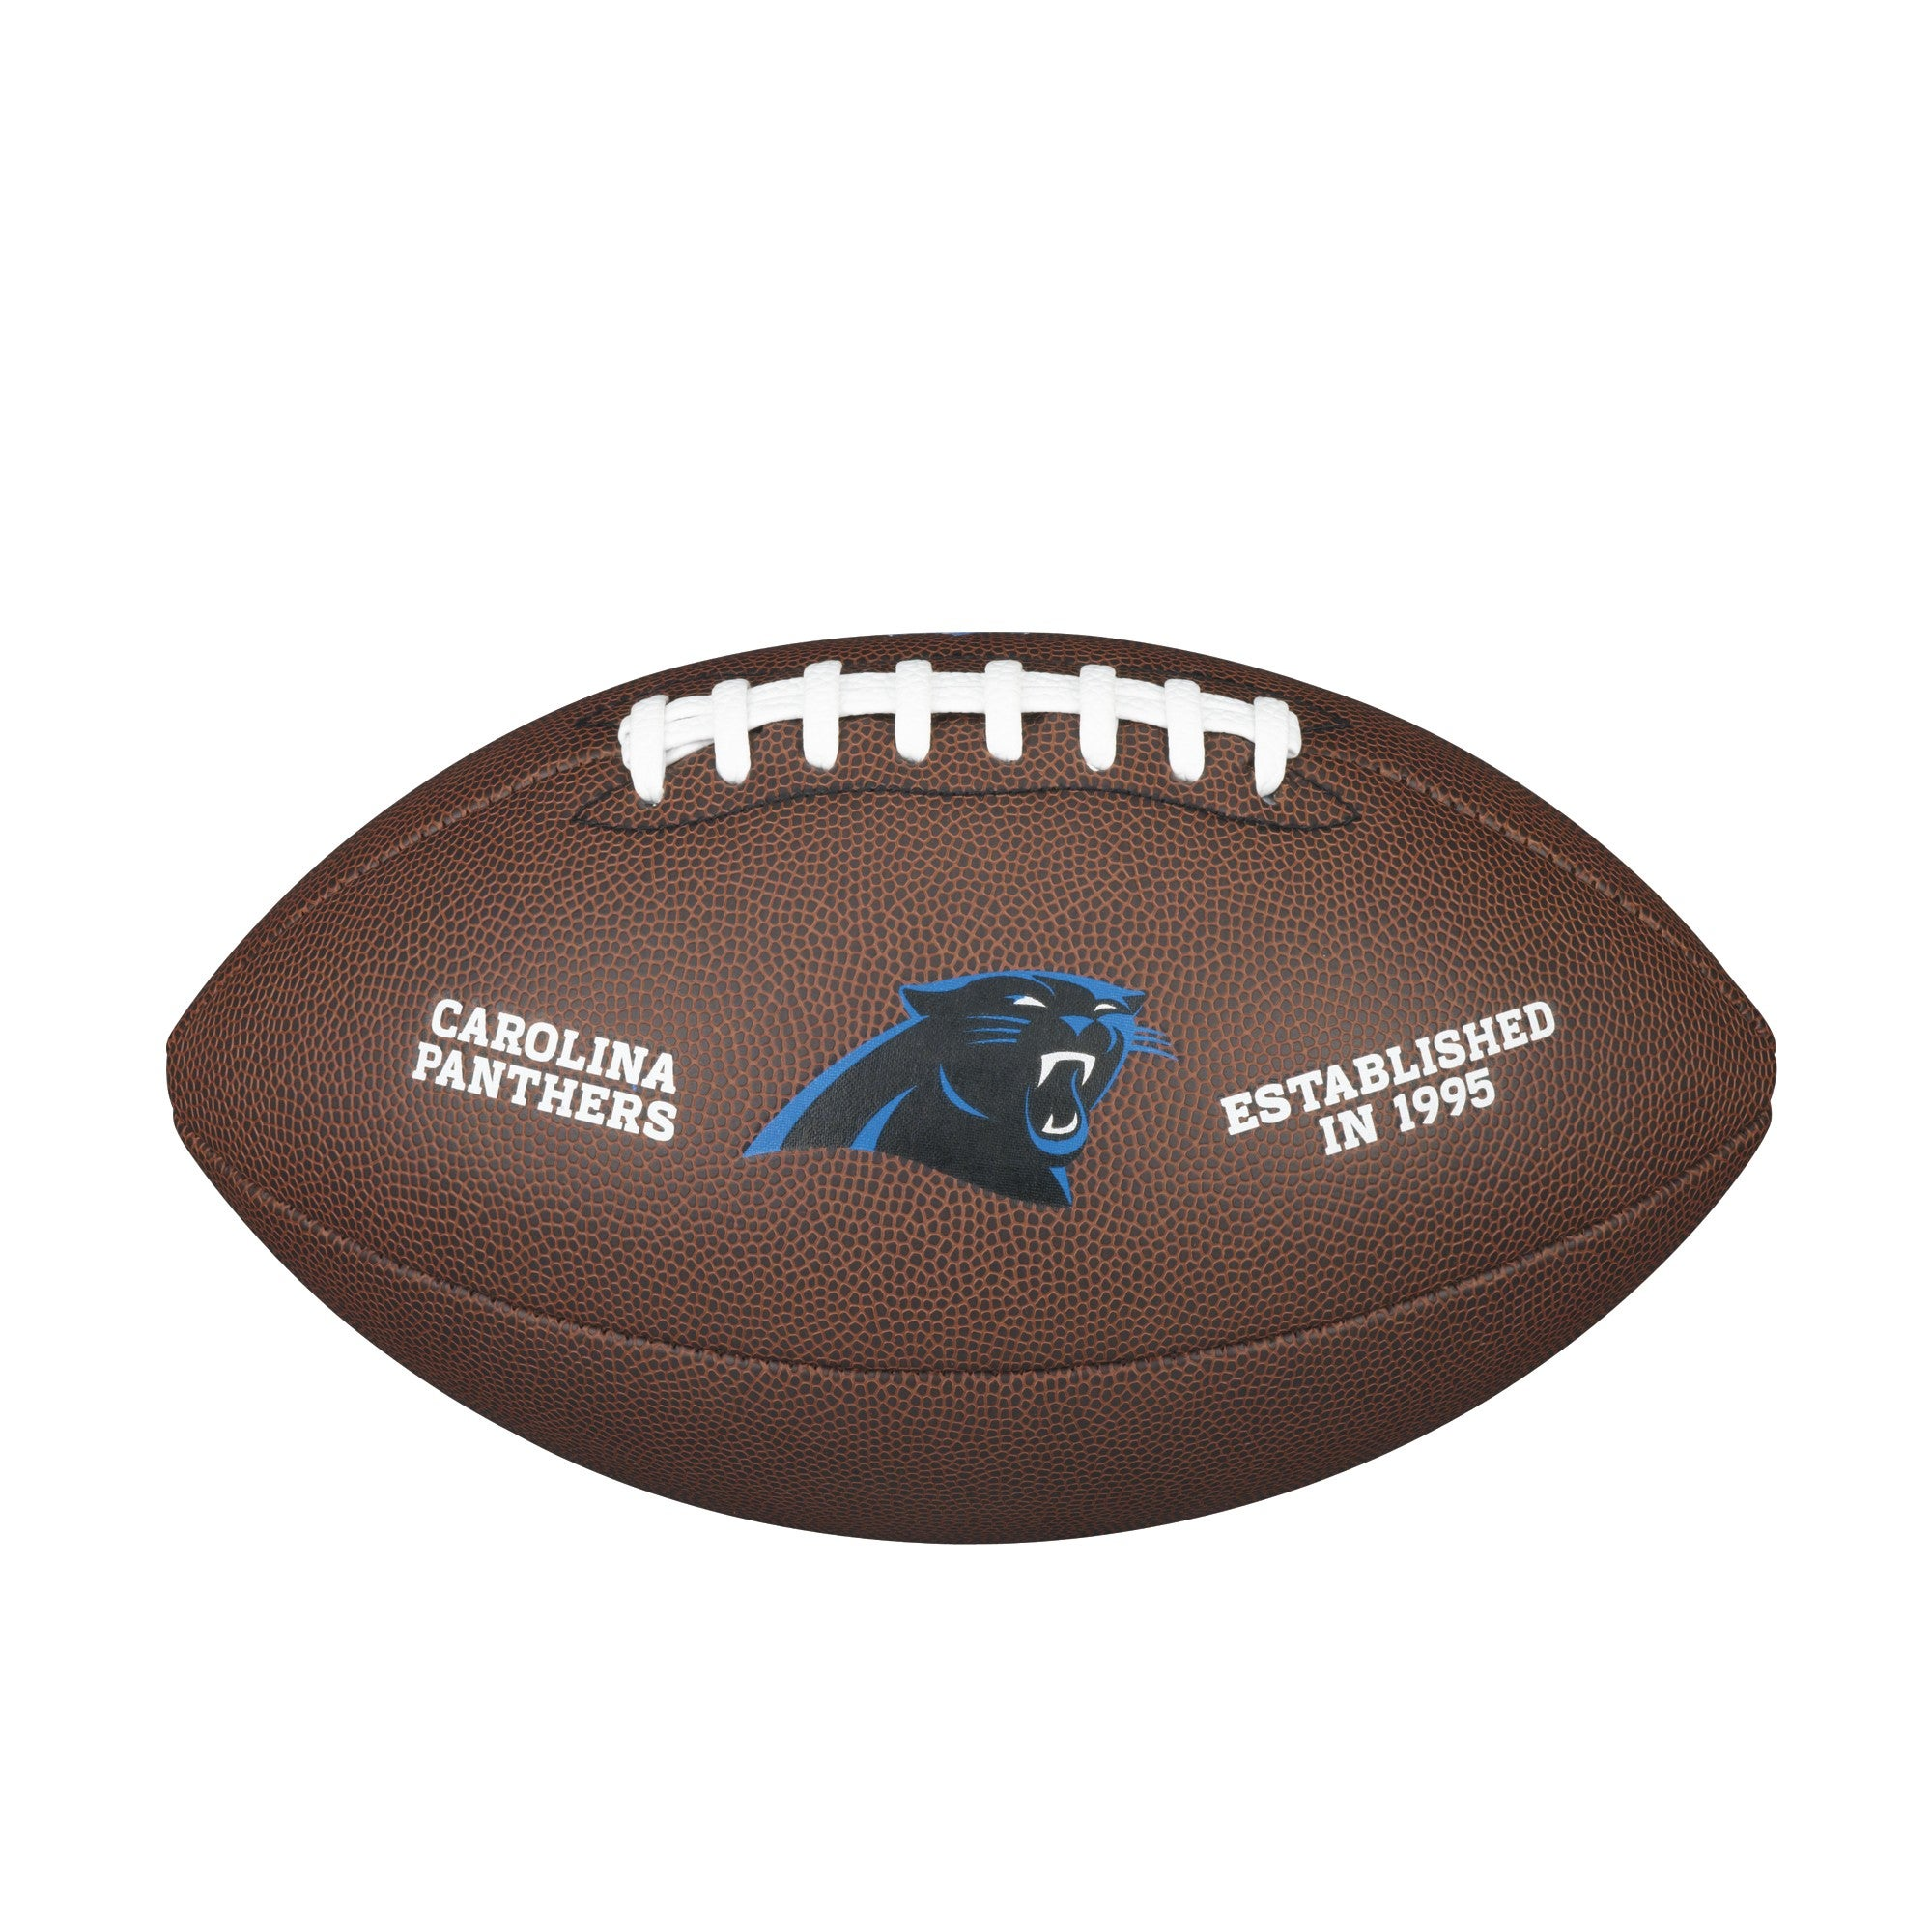 NFL TEAM LOGO COMPOSITE FOOTBALL - OFFICIAL, CAROLINA PANTHERS